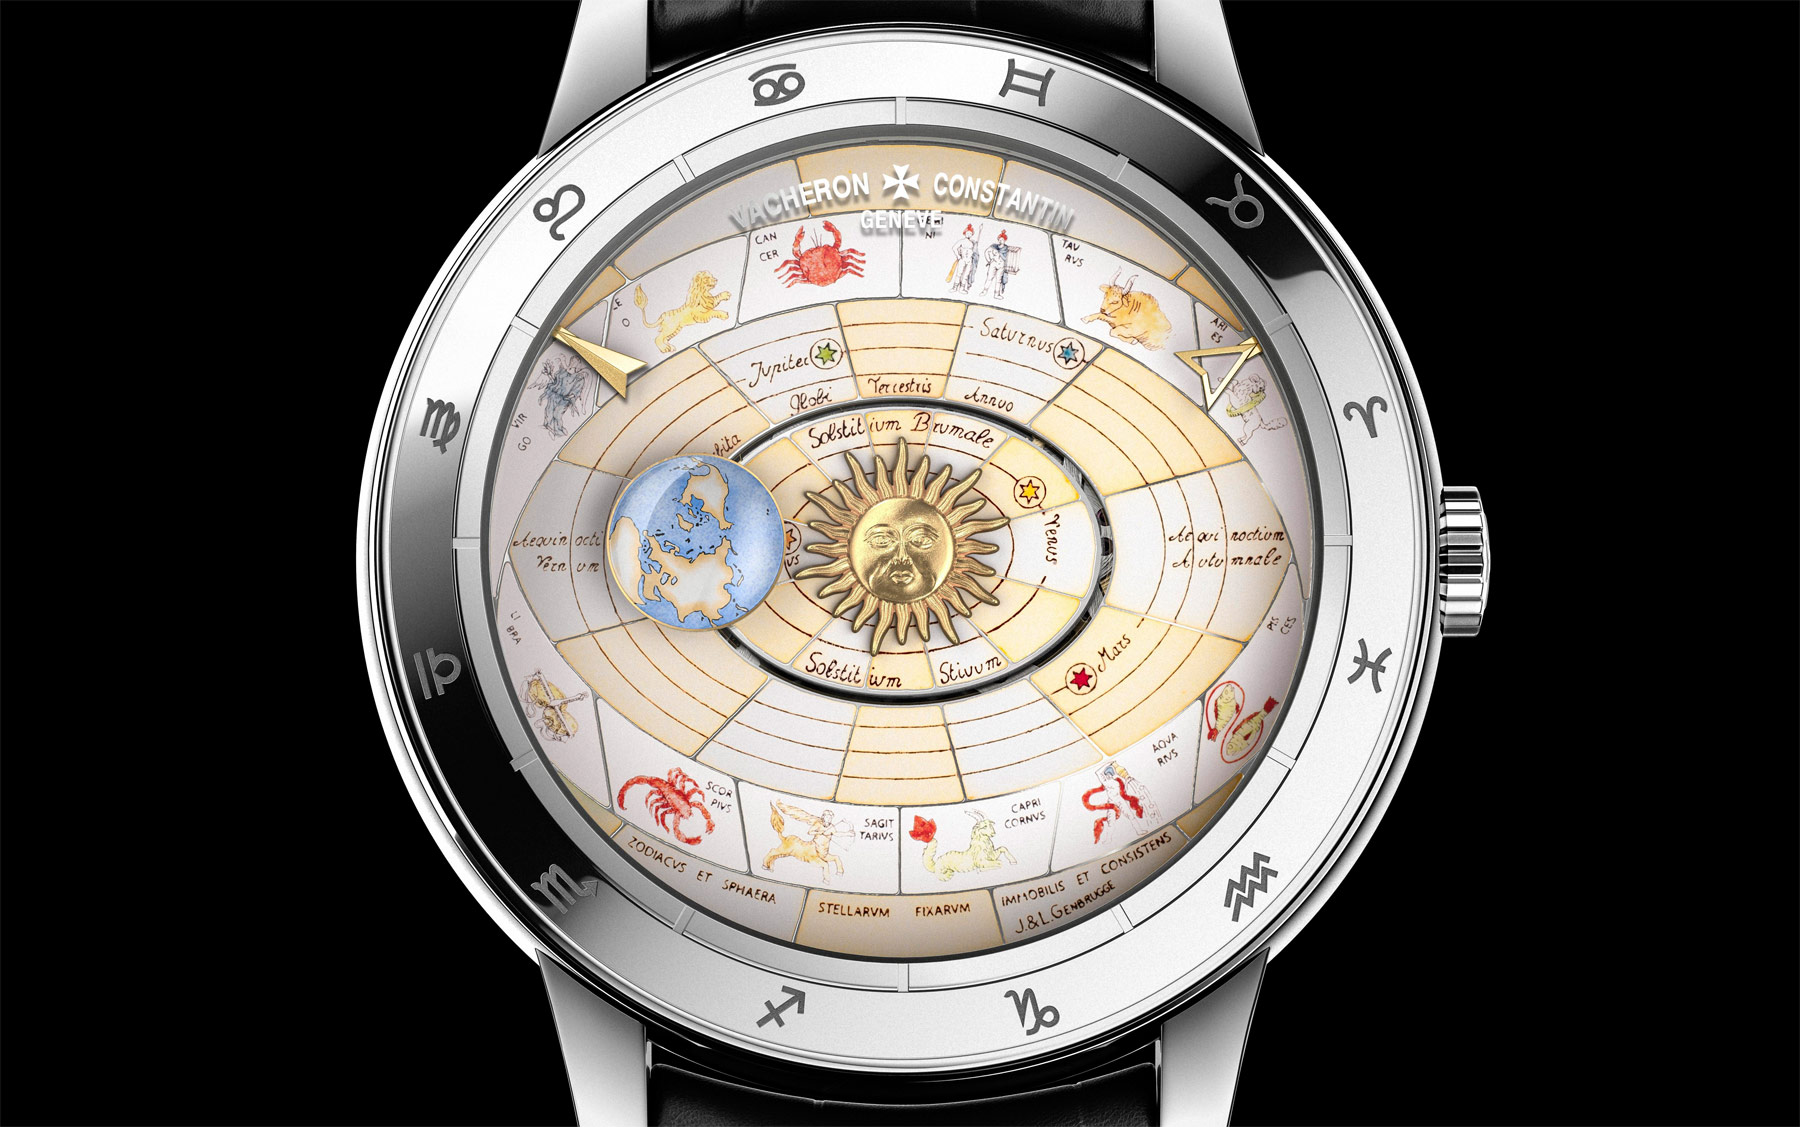 For SIHH 2017: The Métiers d'Art Copernicus Celestial Spheres 2460 RT 3